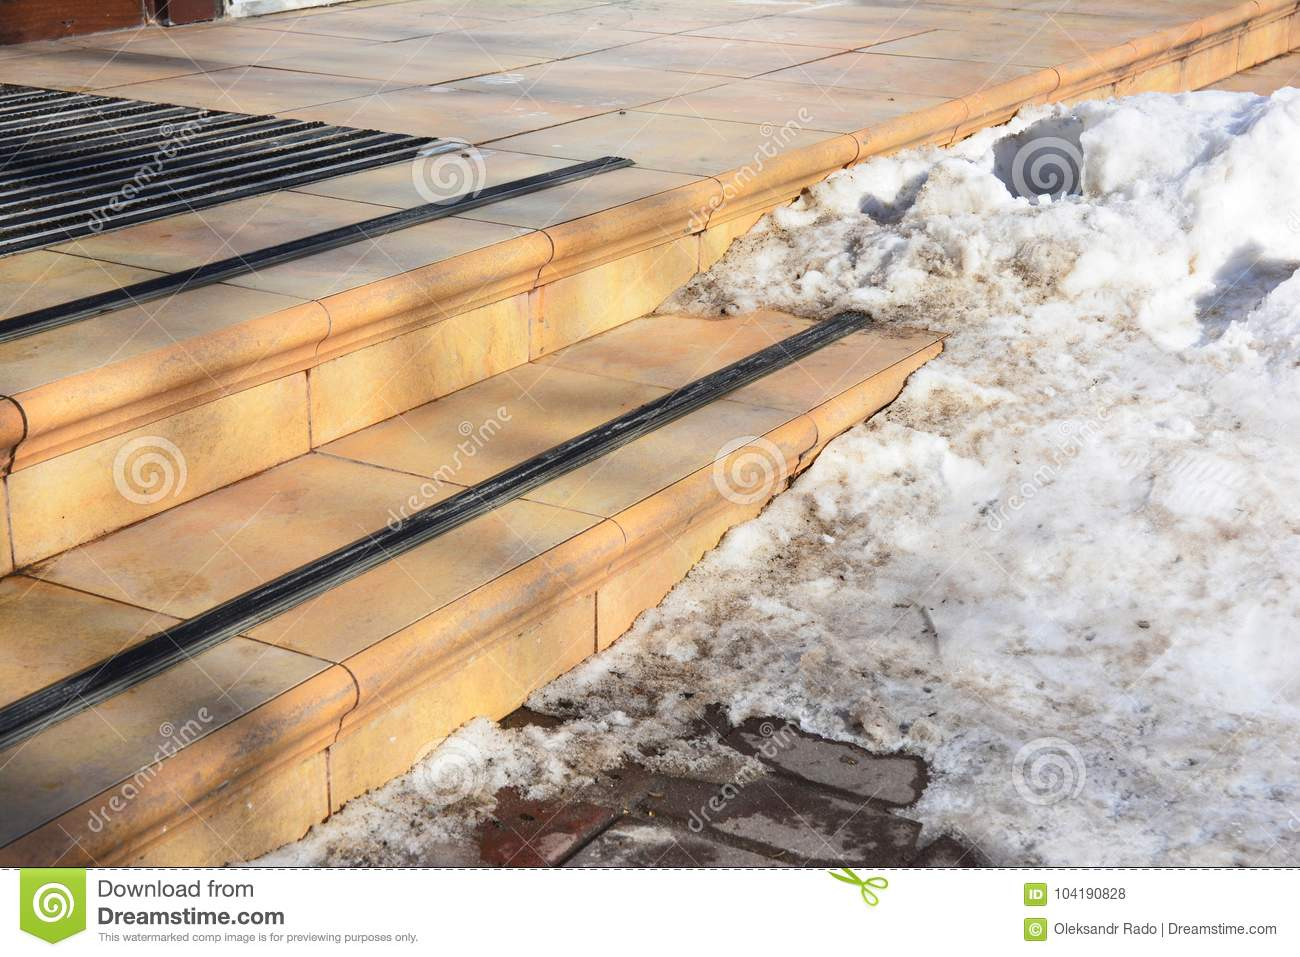 Ice Covered Slippery Stair Case. Slippery Walkway With Ice And